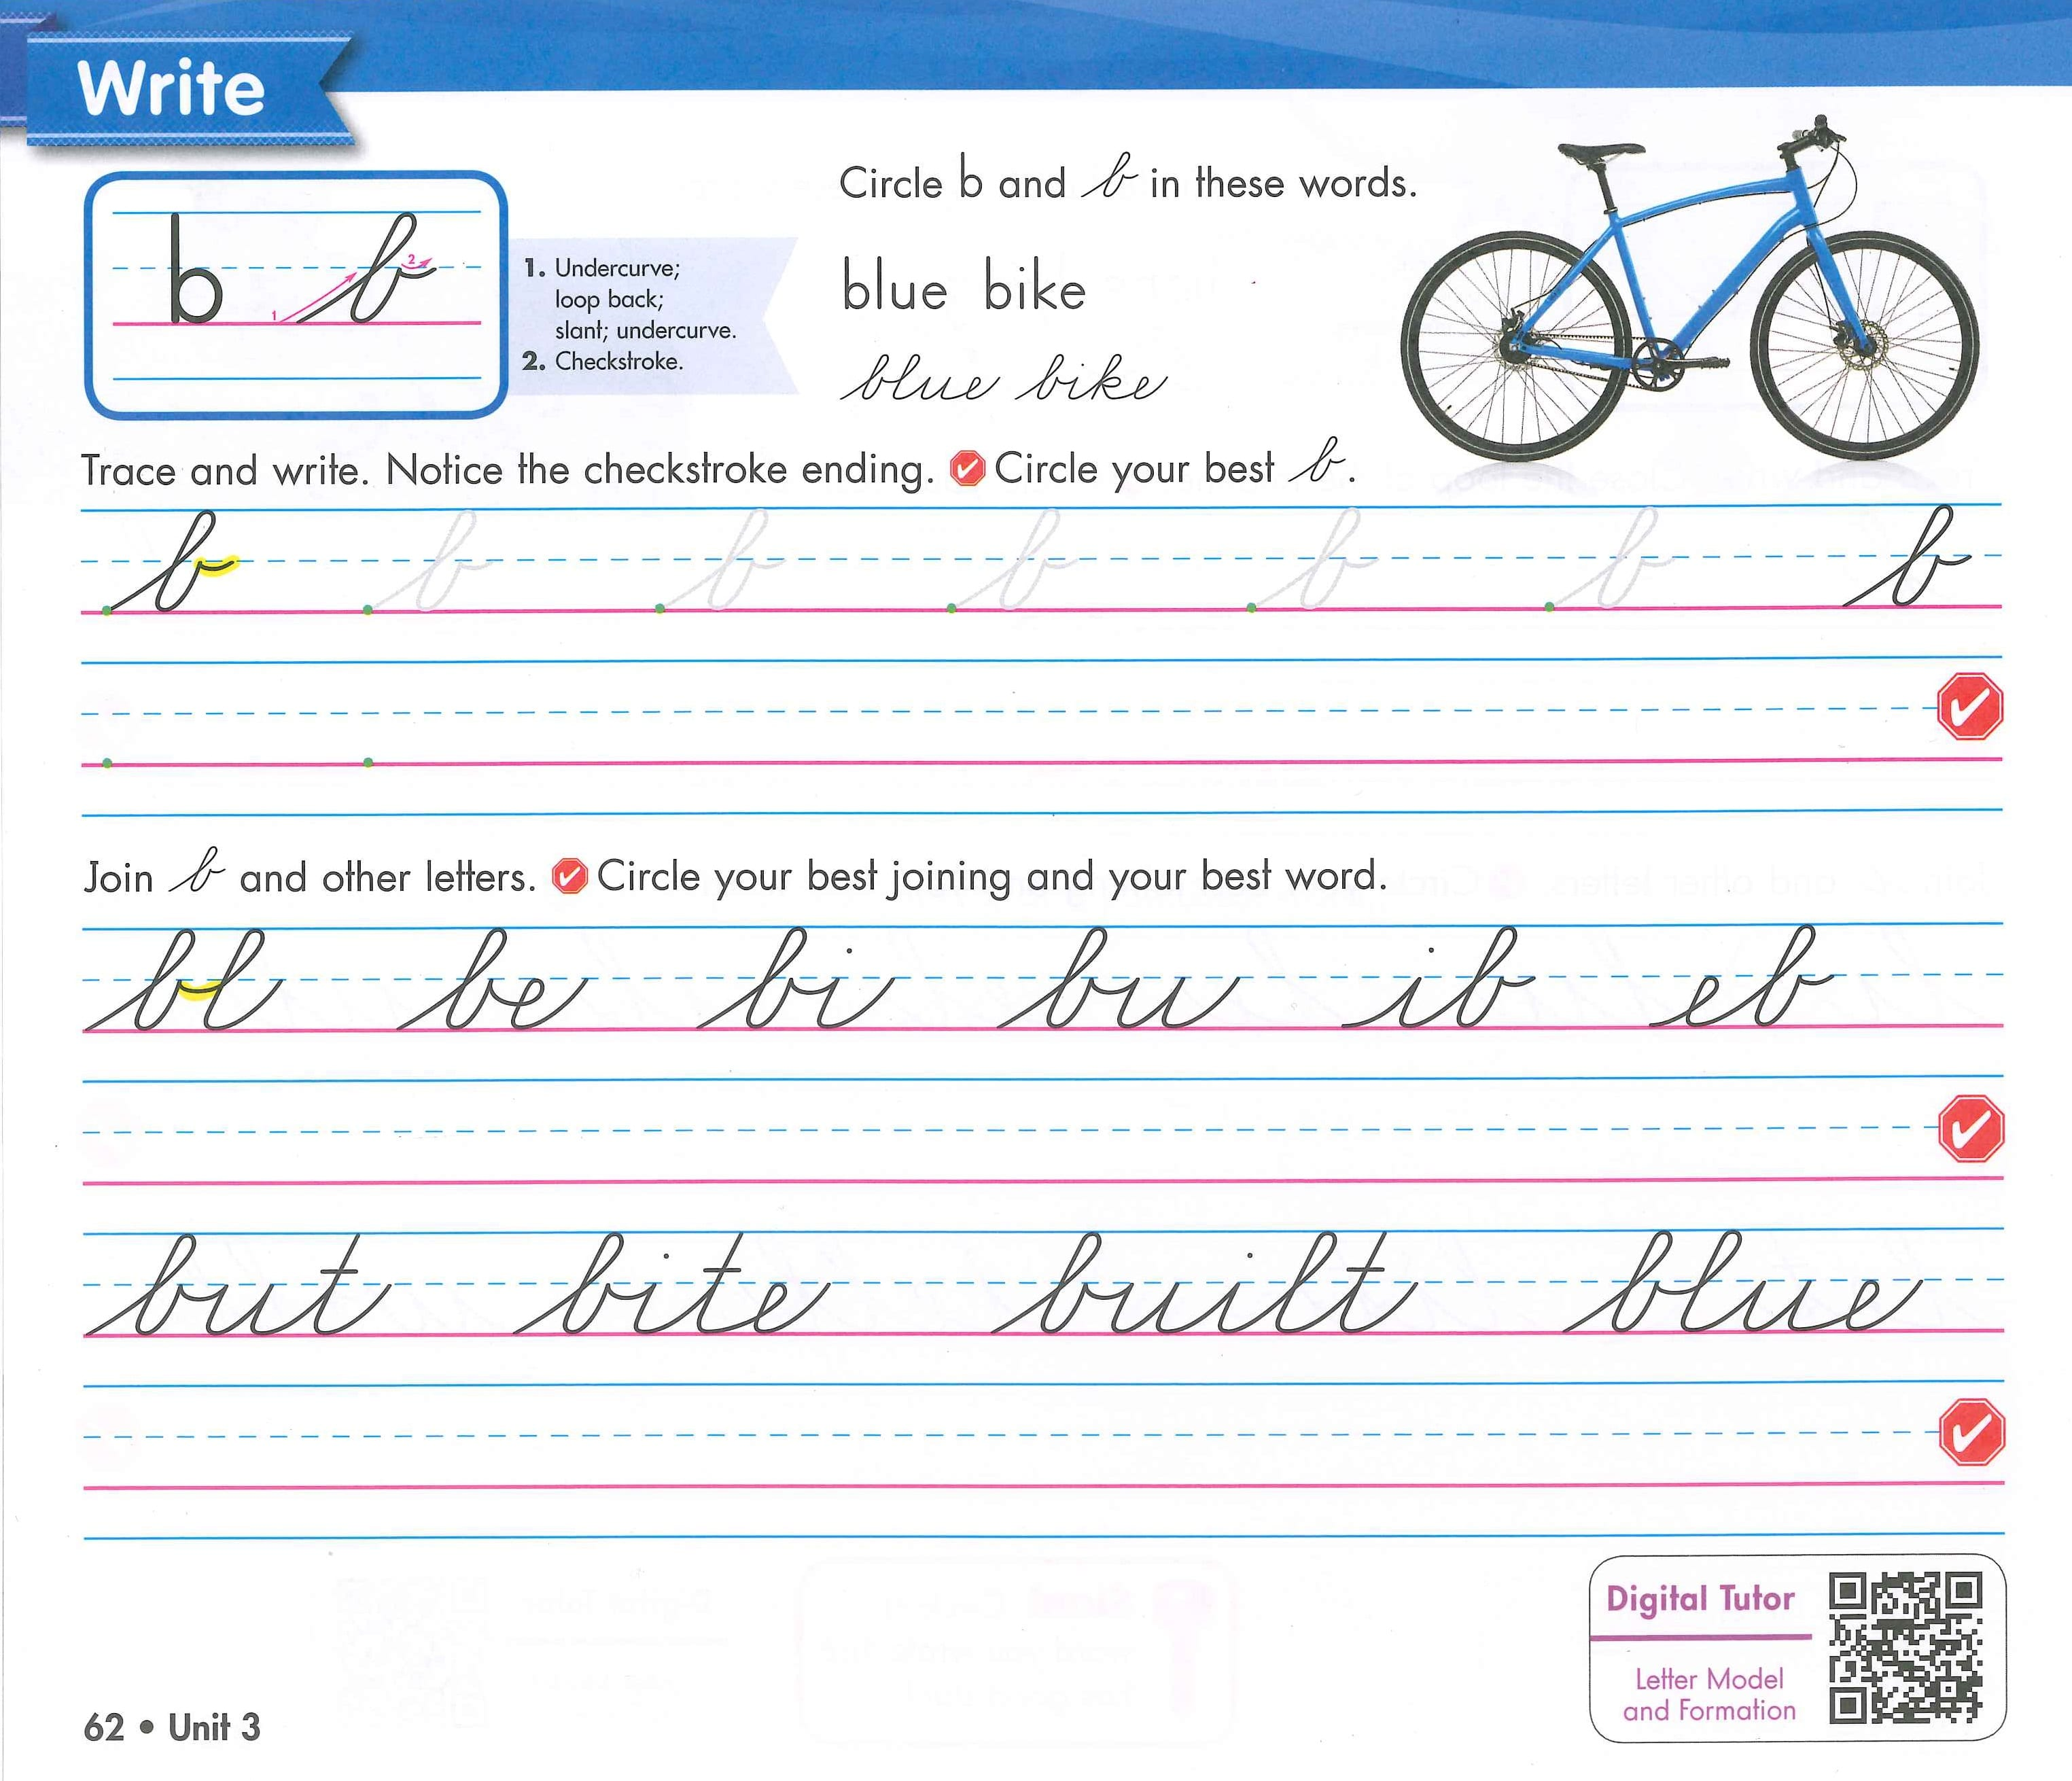 Zaner Bloser Handwriting Is A Complete Program That Can Be